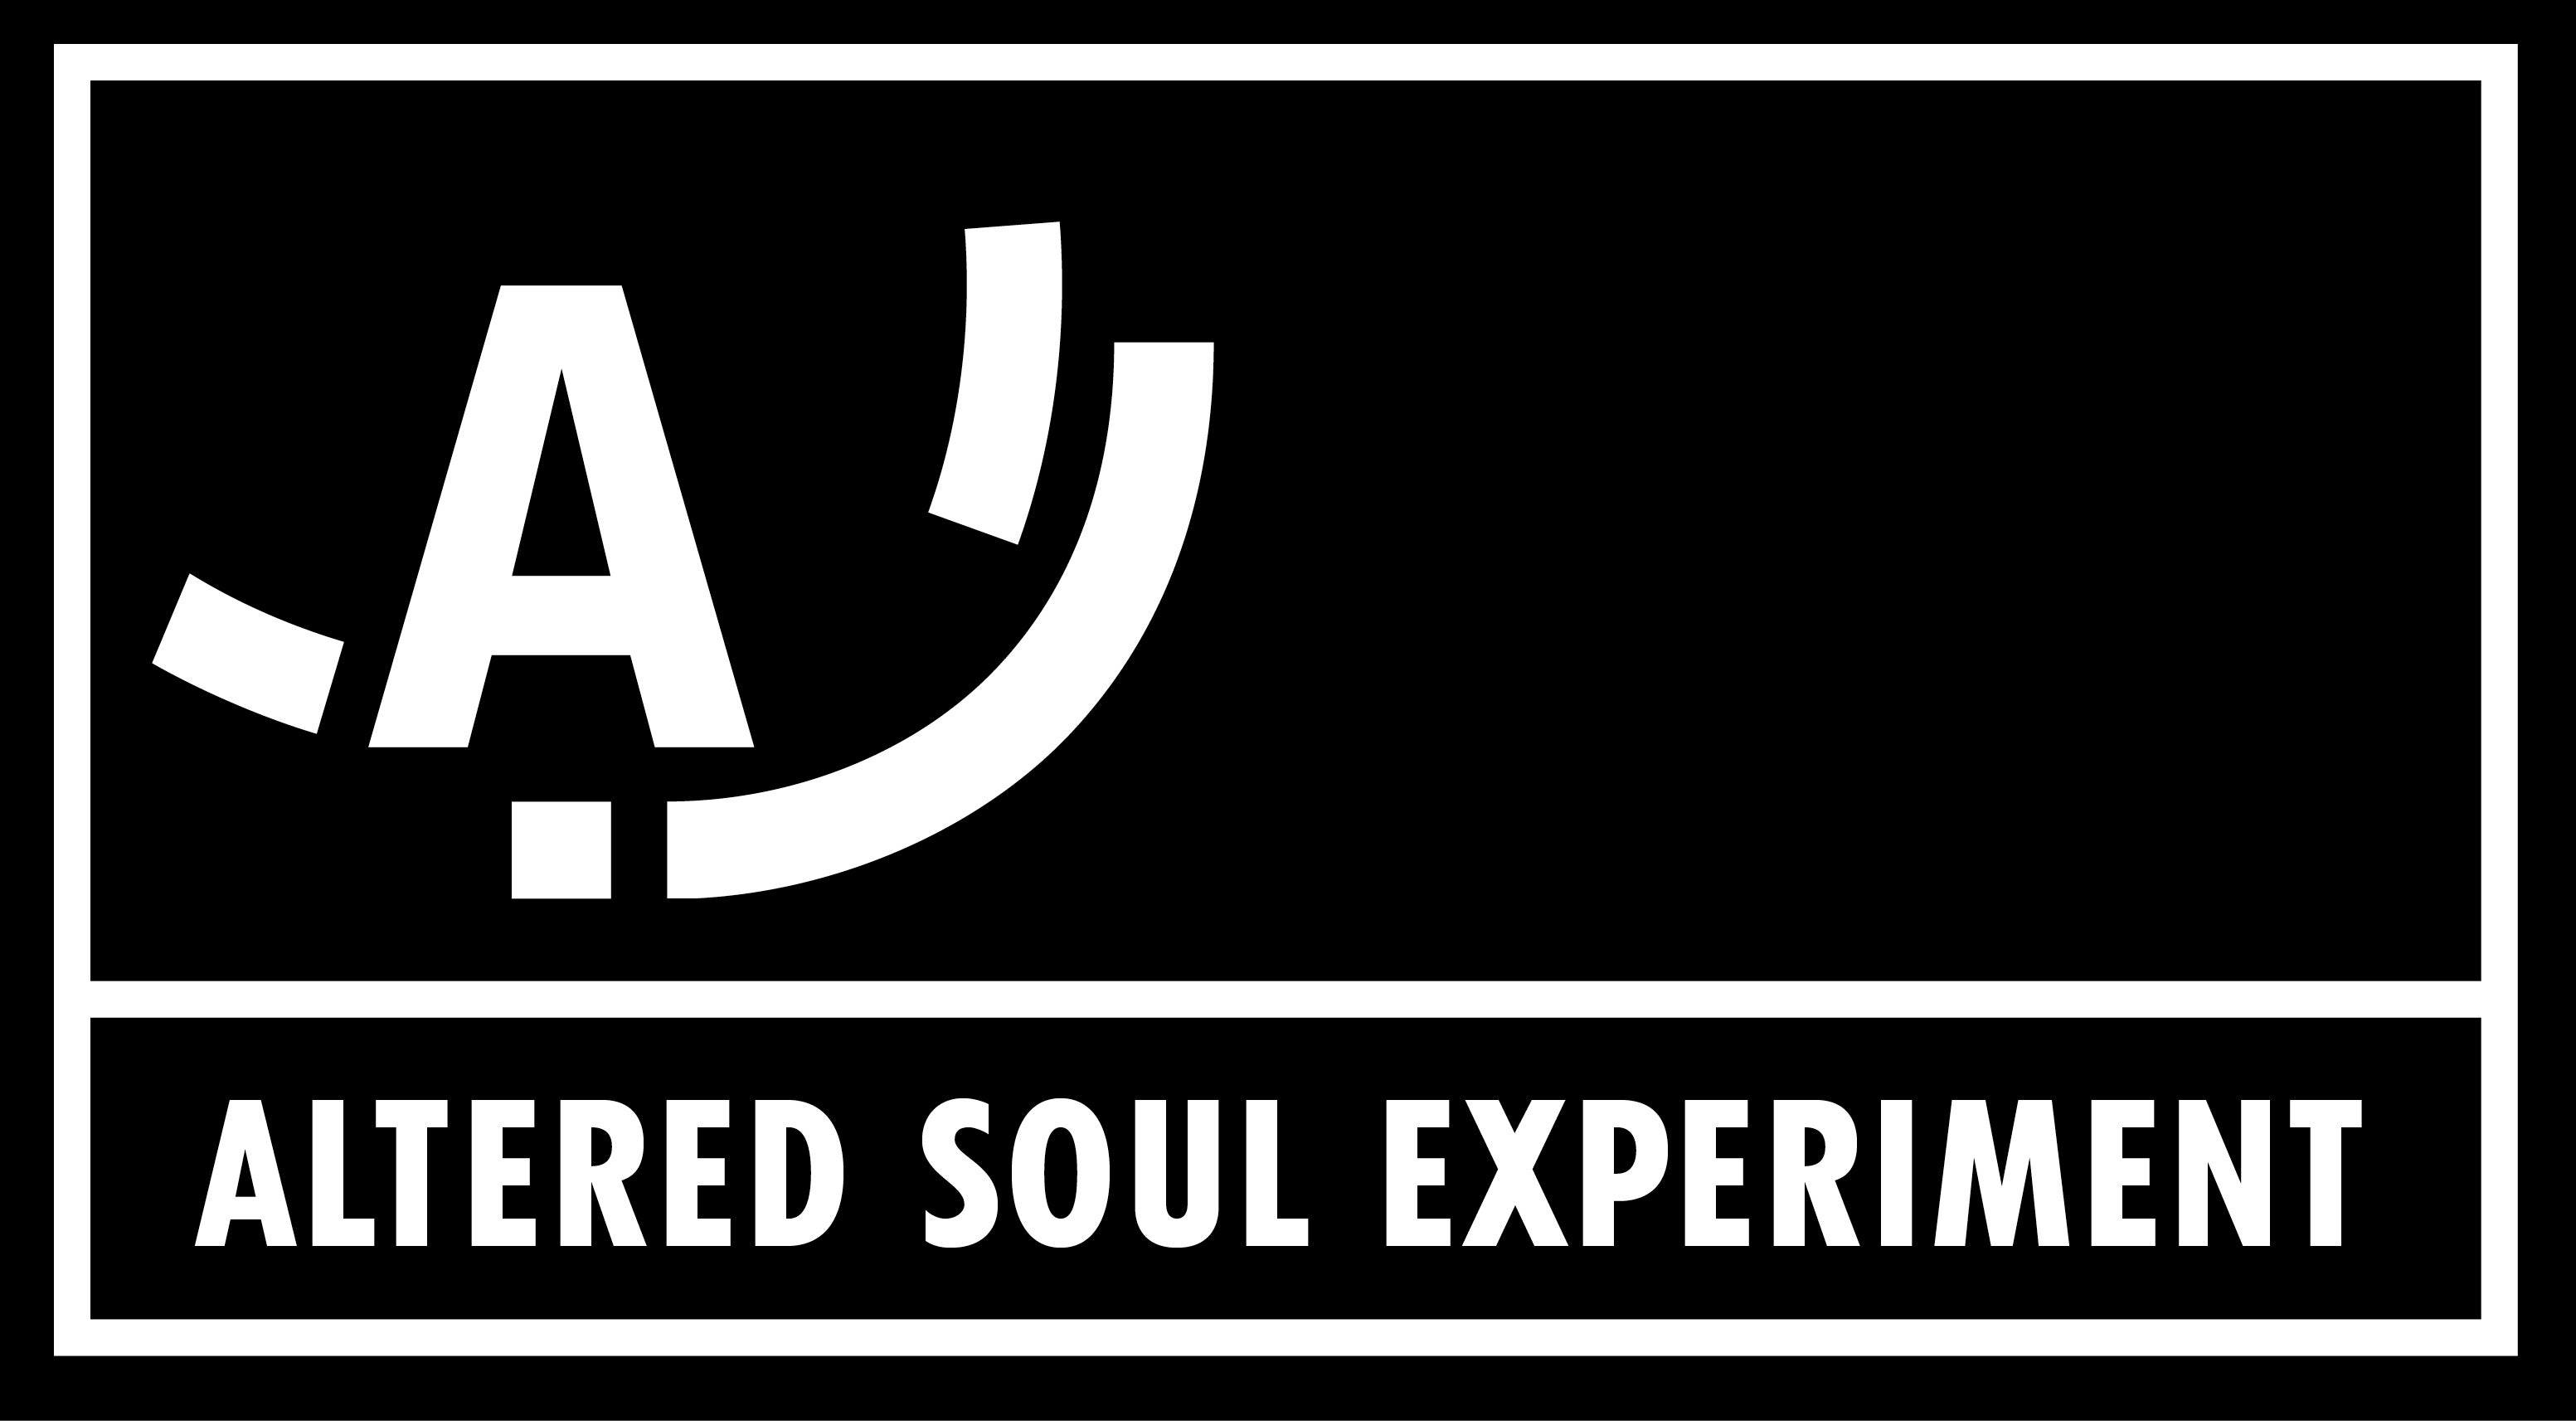 Altered Soul Experiment